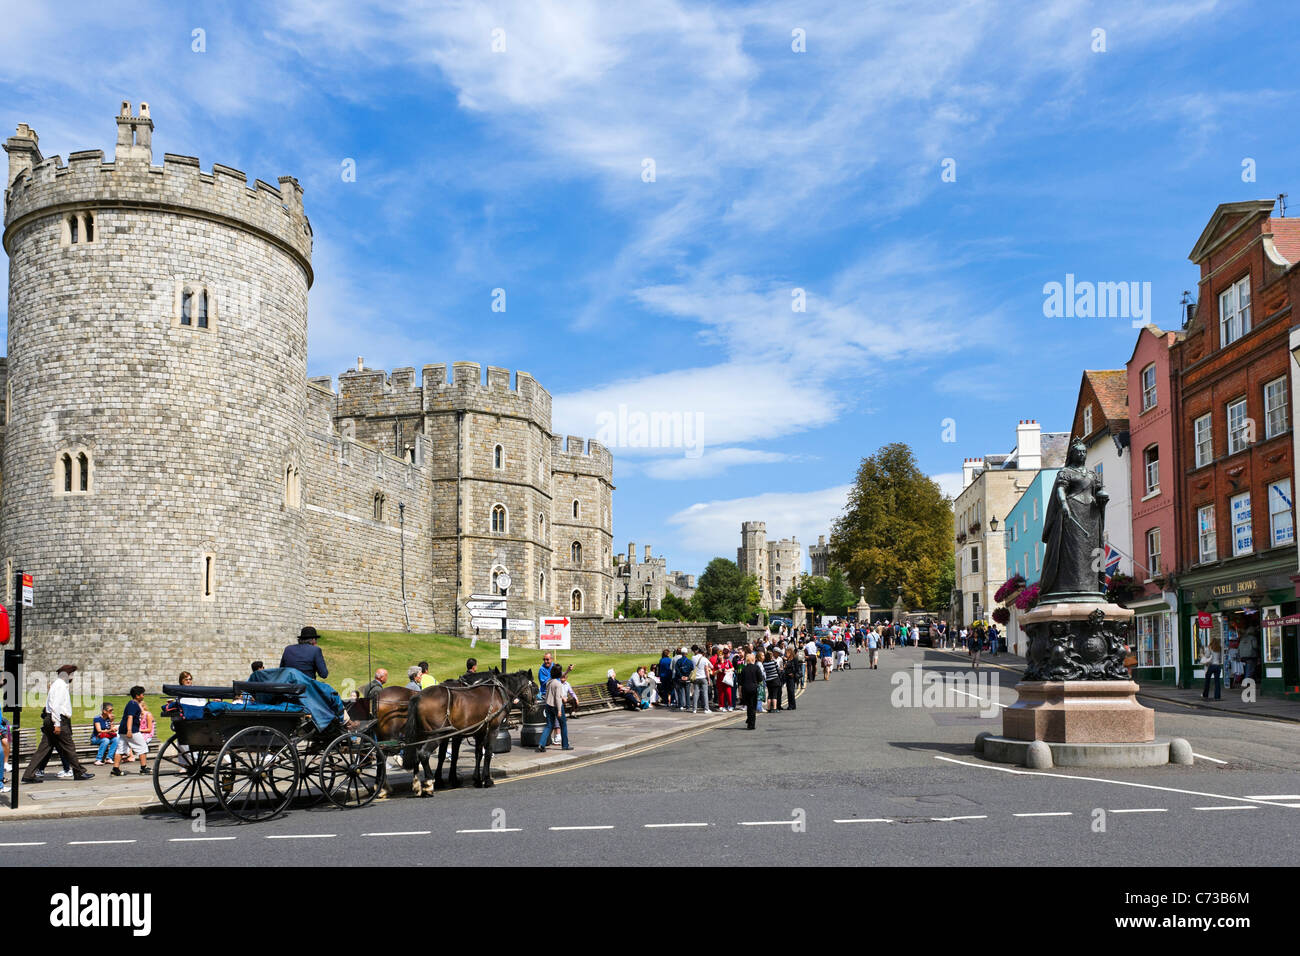 Windsor Castle from the High Street with statue of Queen Victoria in the foreground, Windsor, Berkshire, England, - Stock Image